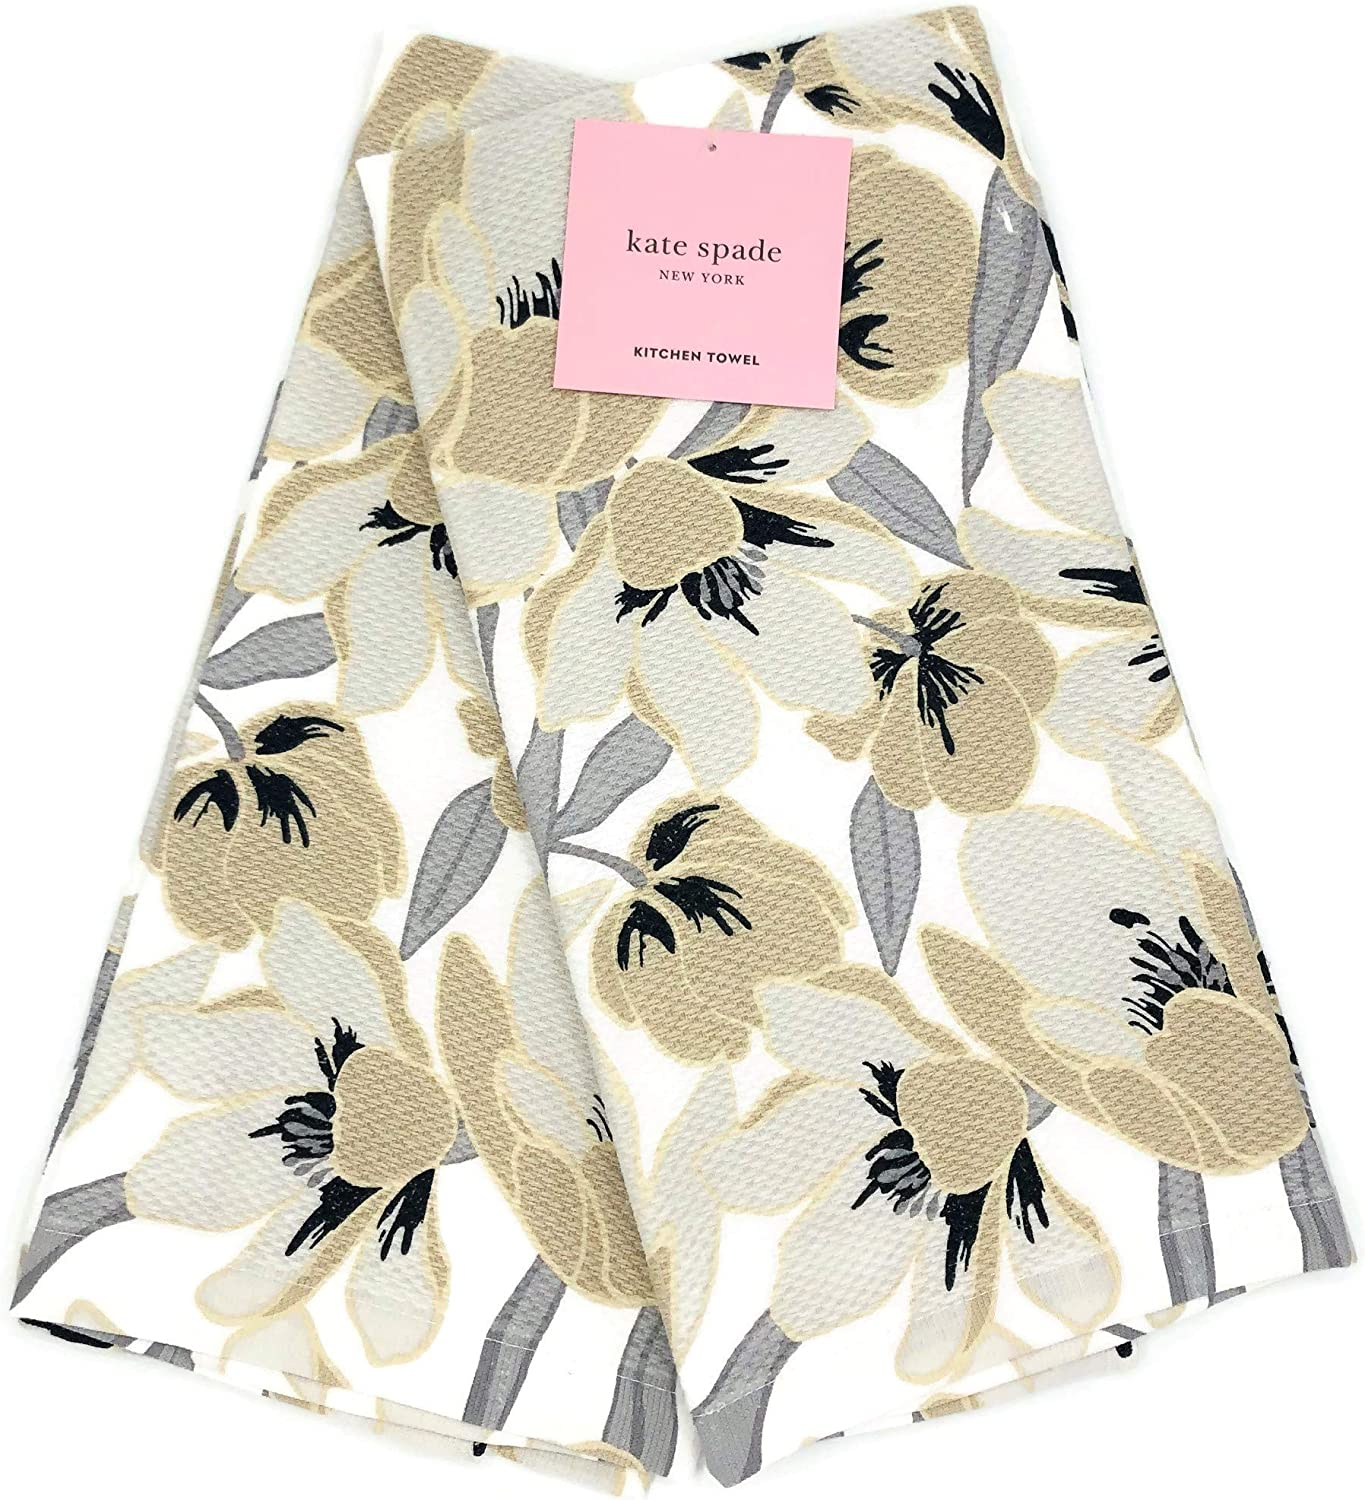 Kate Spade New York Flaxseed Rio Tropical Floral 2 Pack Kitchen Towels Dishtowels Set